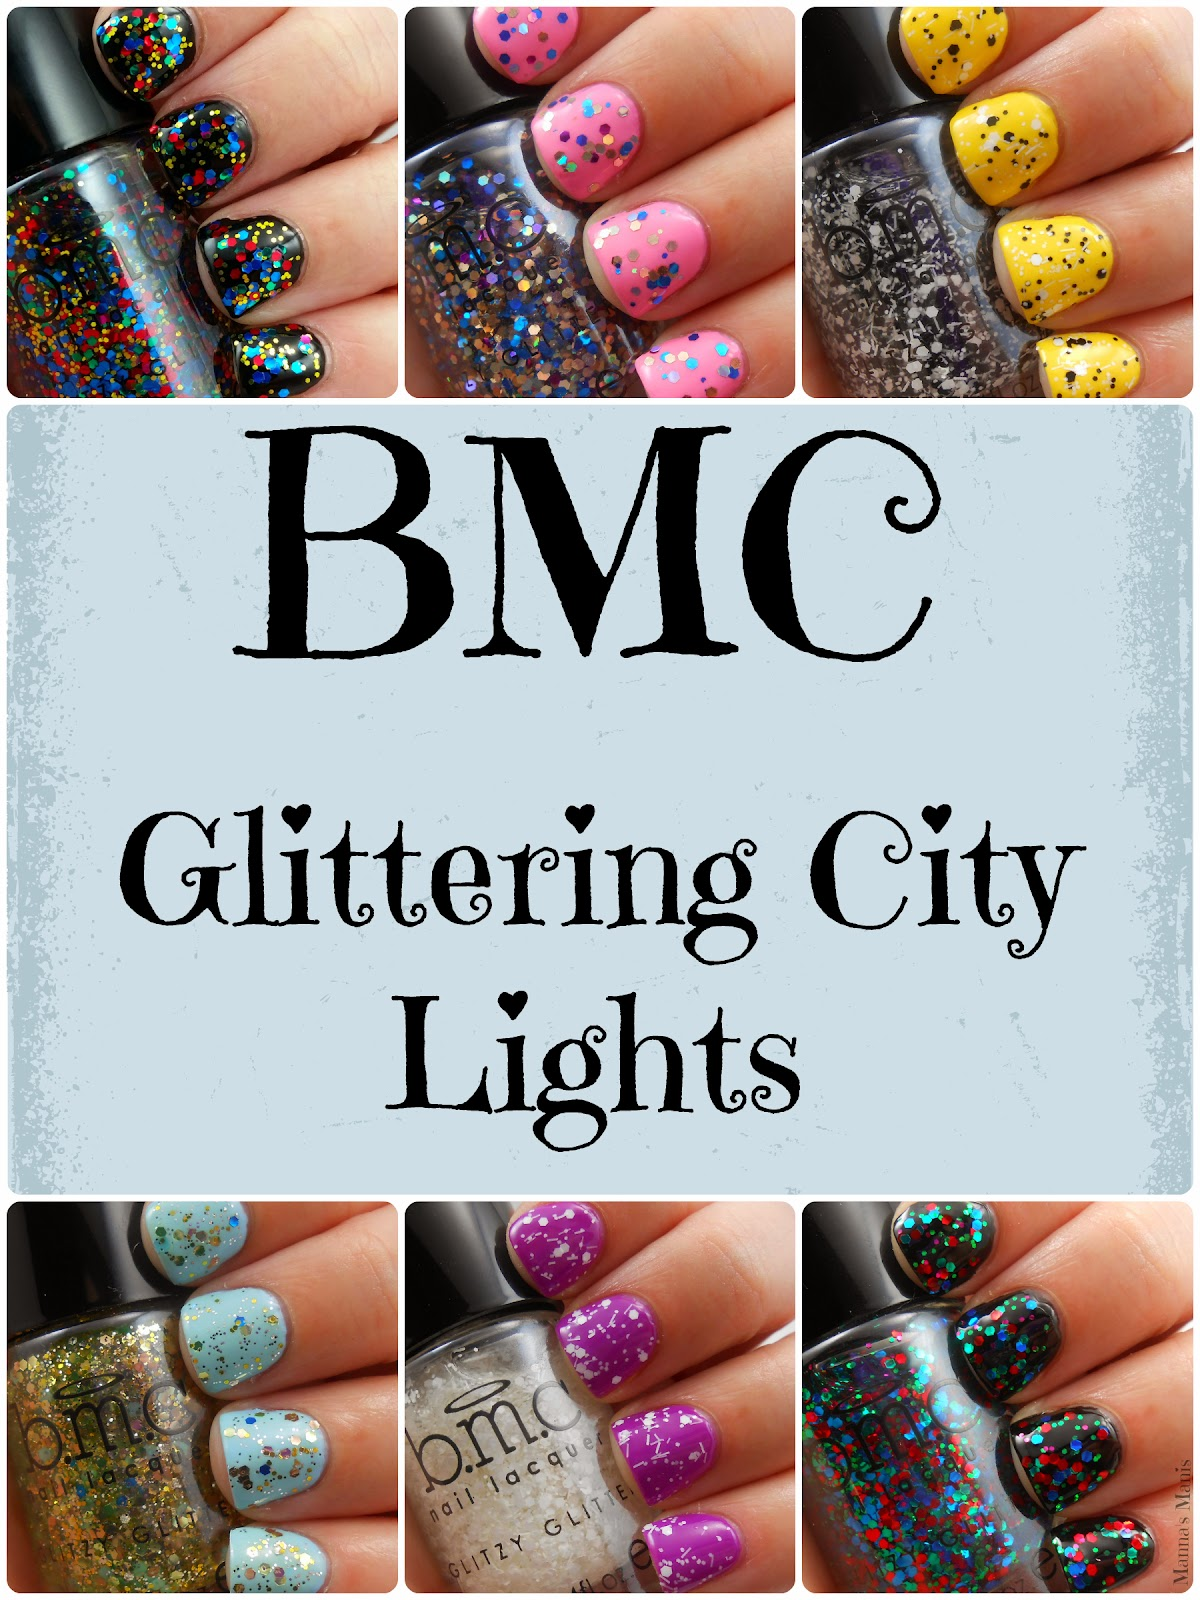 BMC Glitter City Lights nail polish collection